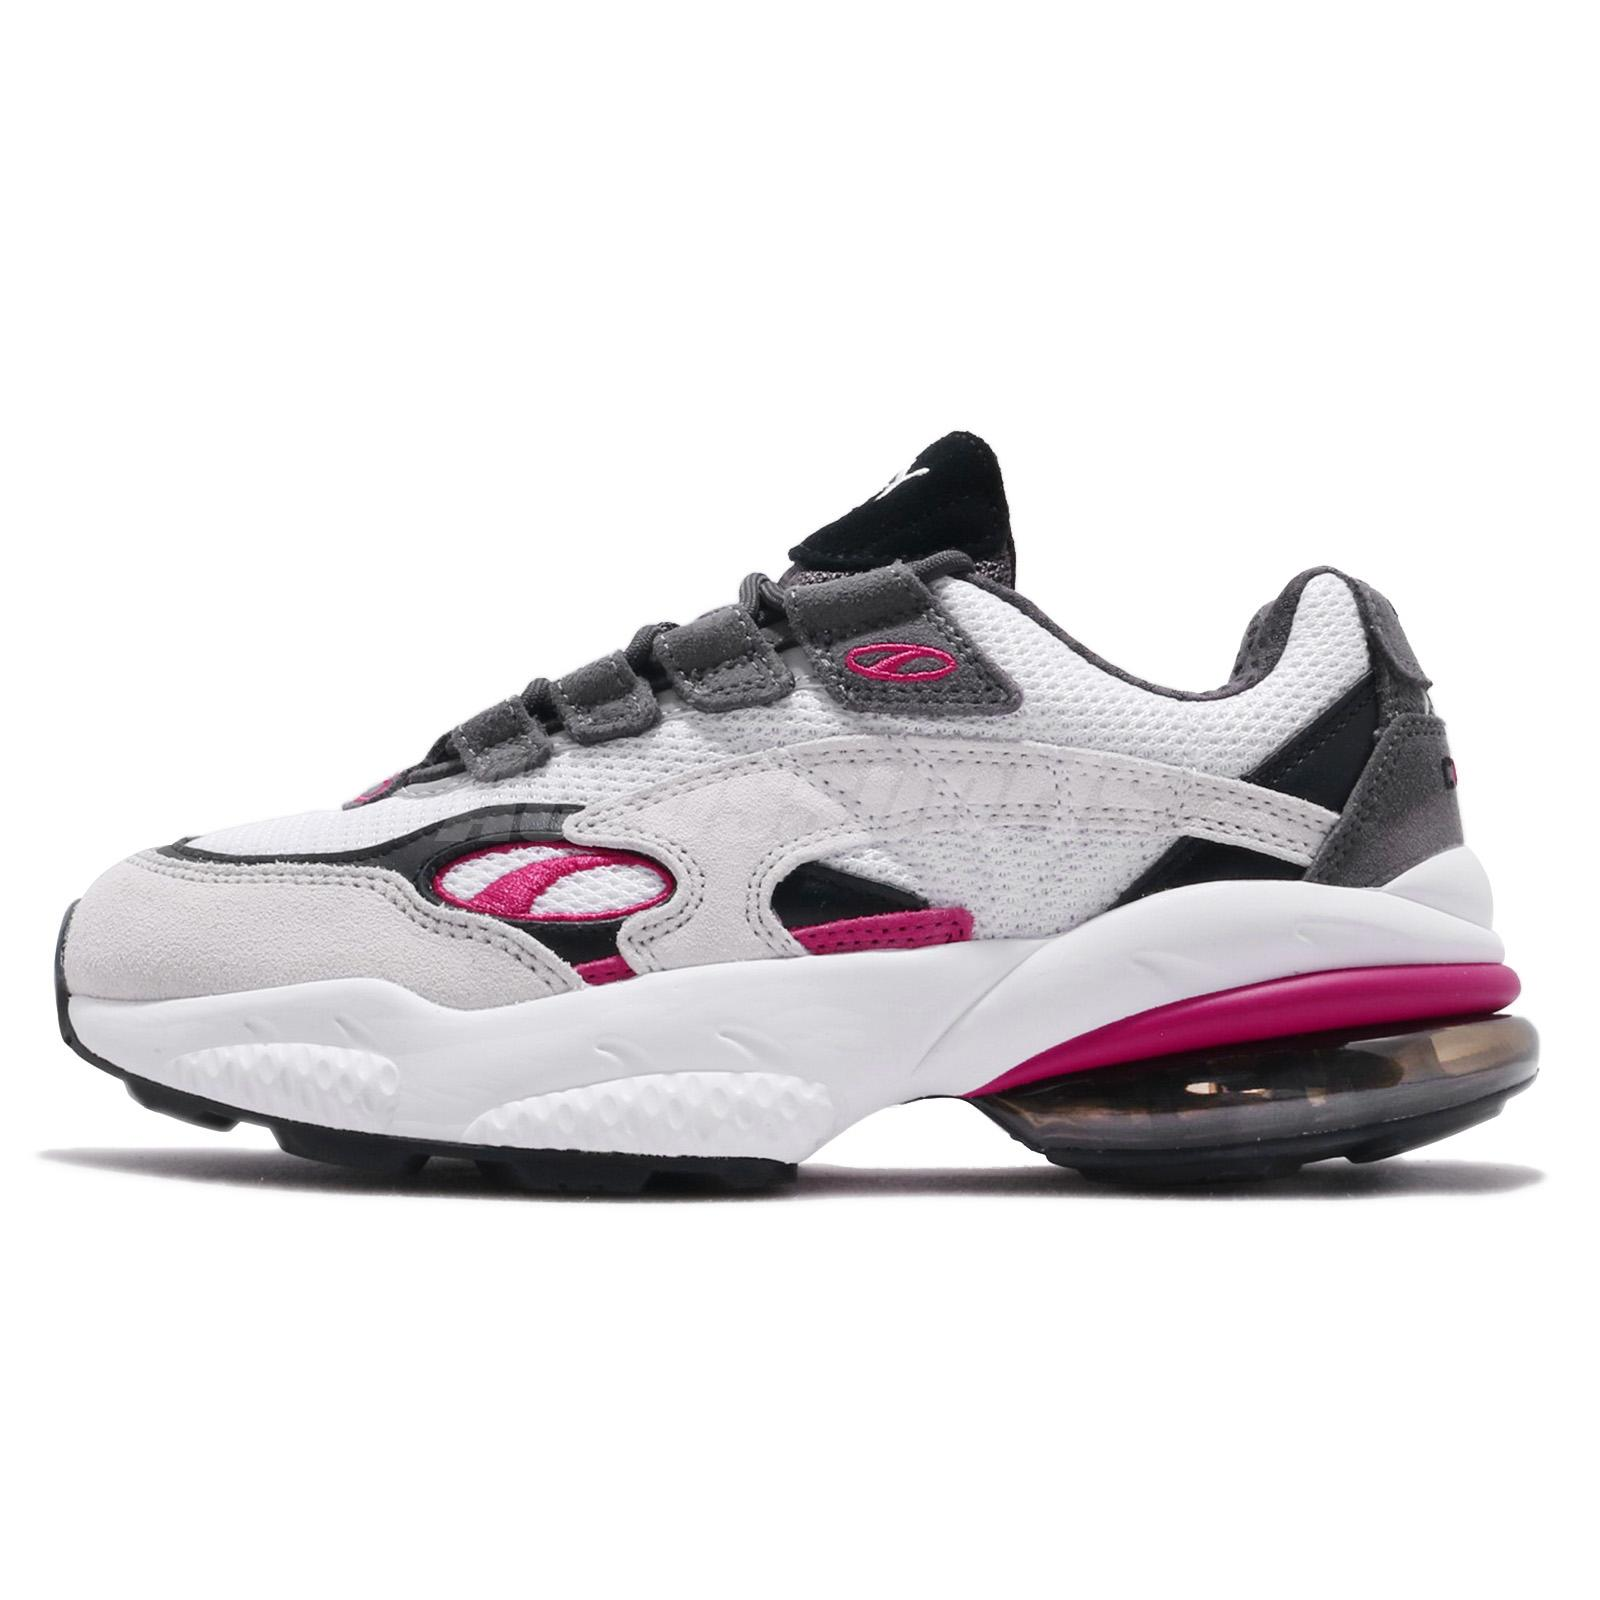 Puma Cell Venom White Fuchsia Purple Black Men Running Shoes Sneakers 369354-08